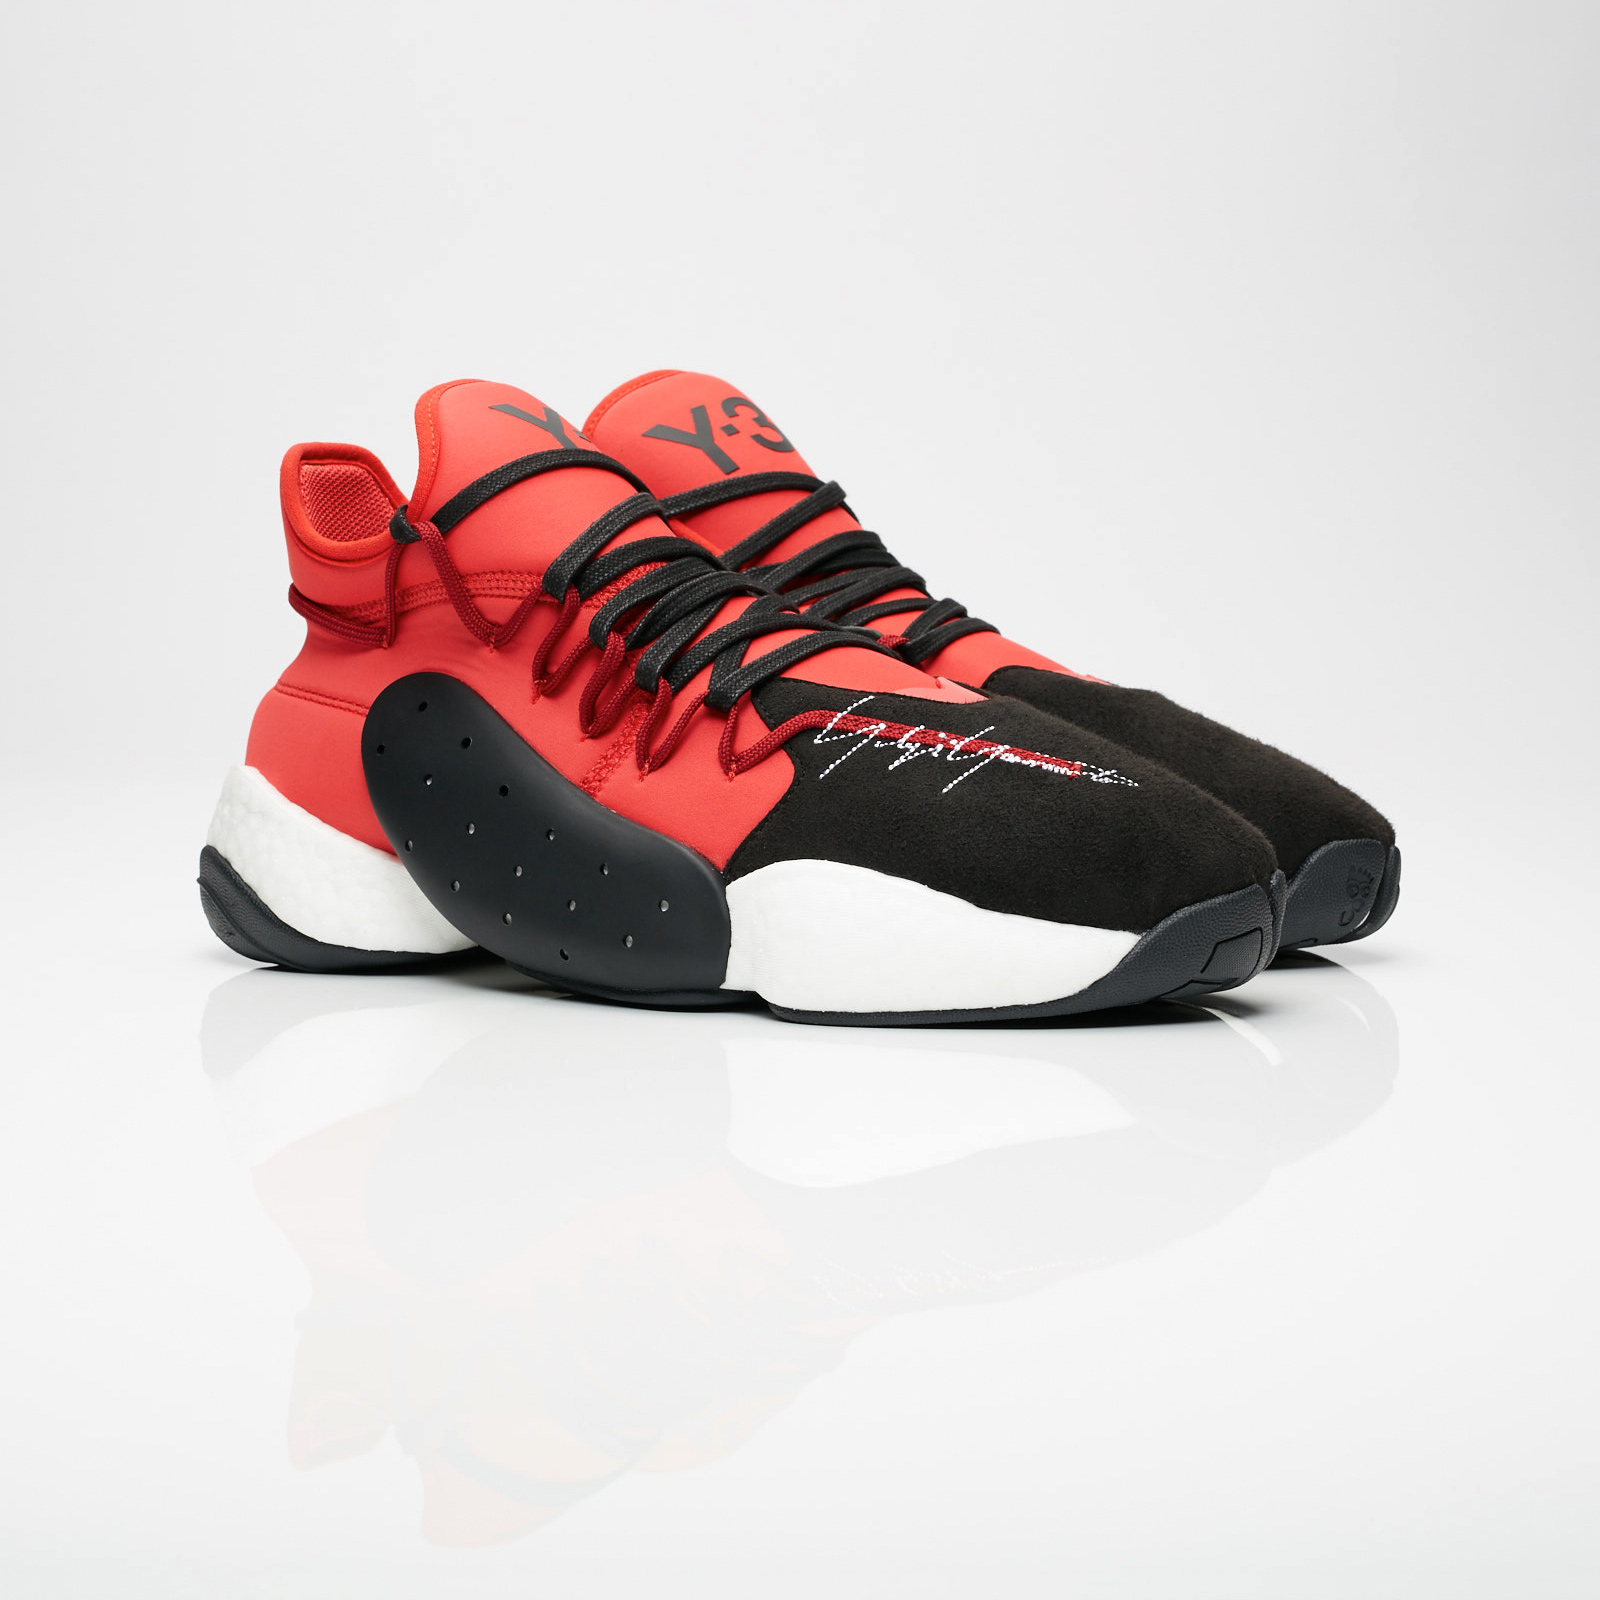 e744d5b576f6 adidas Y-3 BYW Bball - Bc0338 - Sneakersnstuff